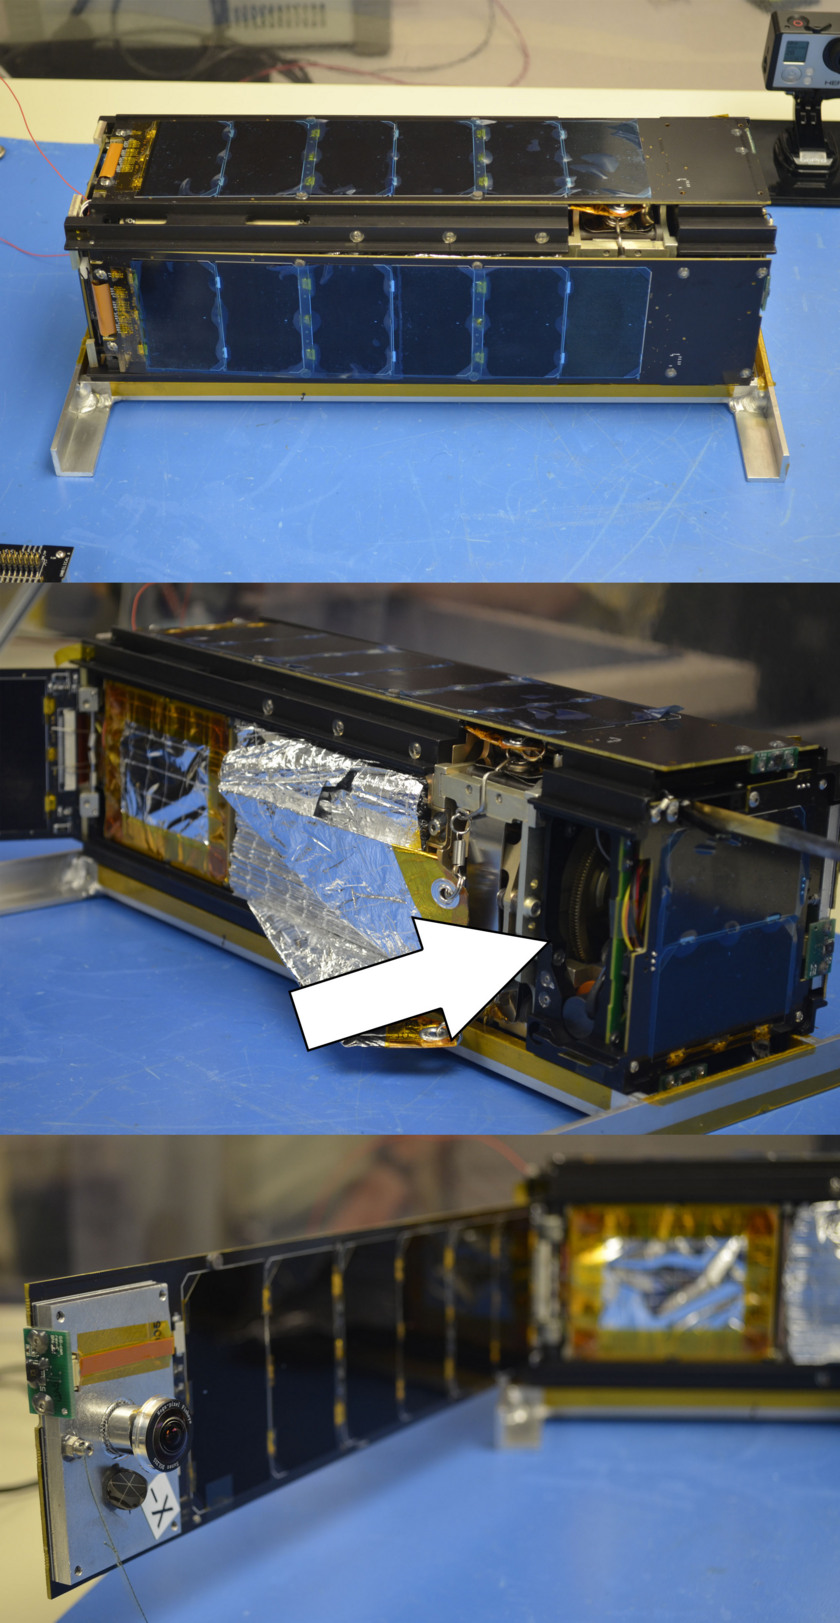 LightSail deployable solar panel and camera montage